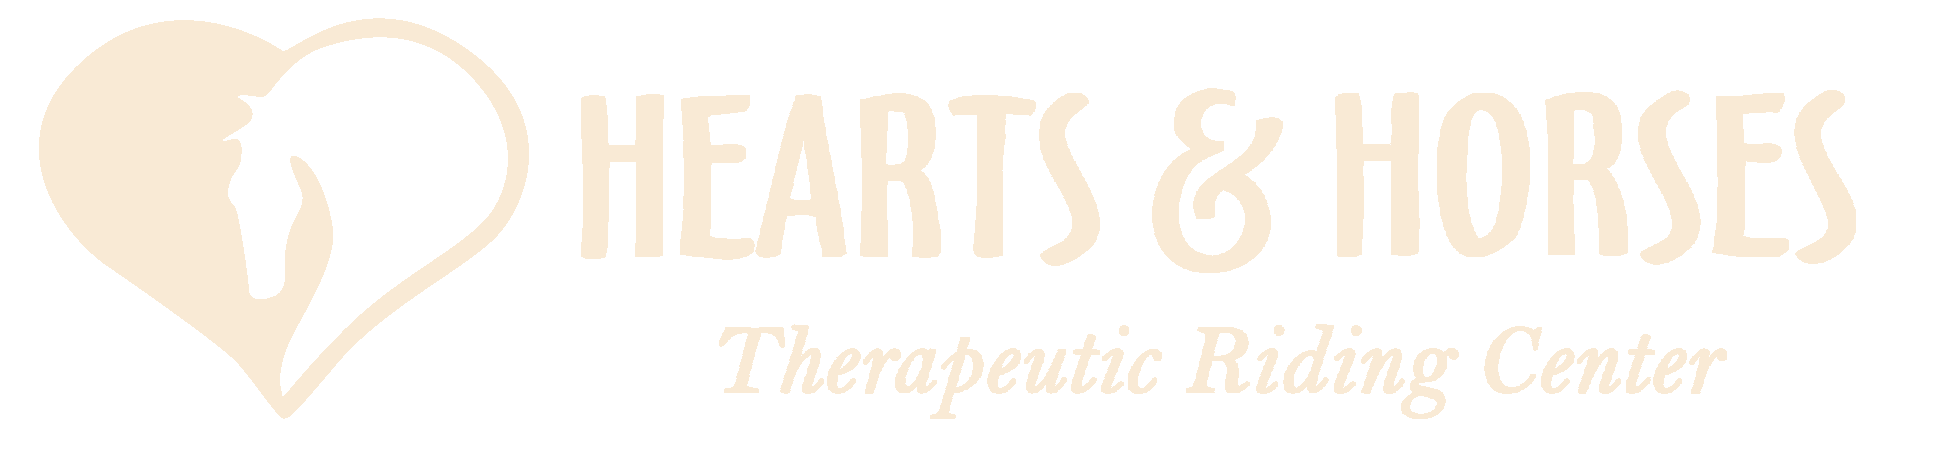 Hearts & Horses Therapeutic Riding Center